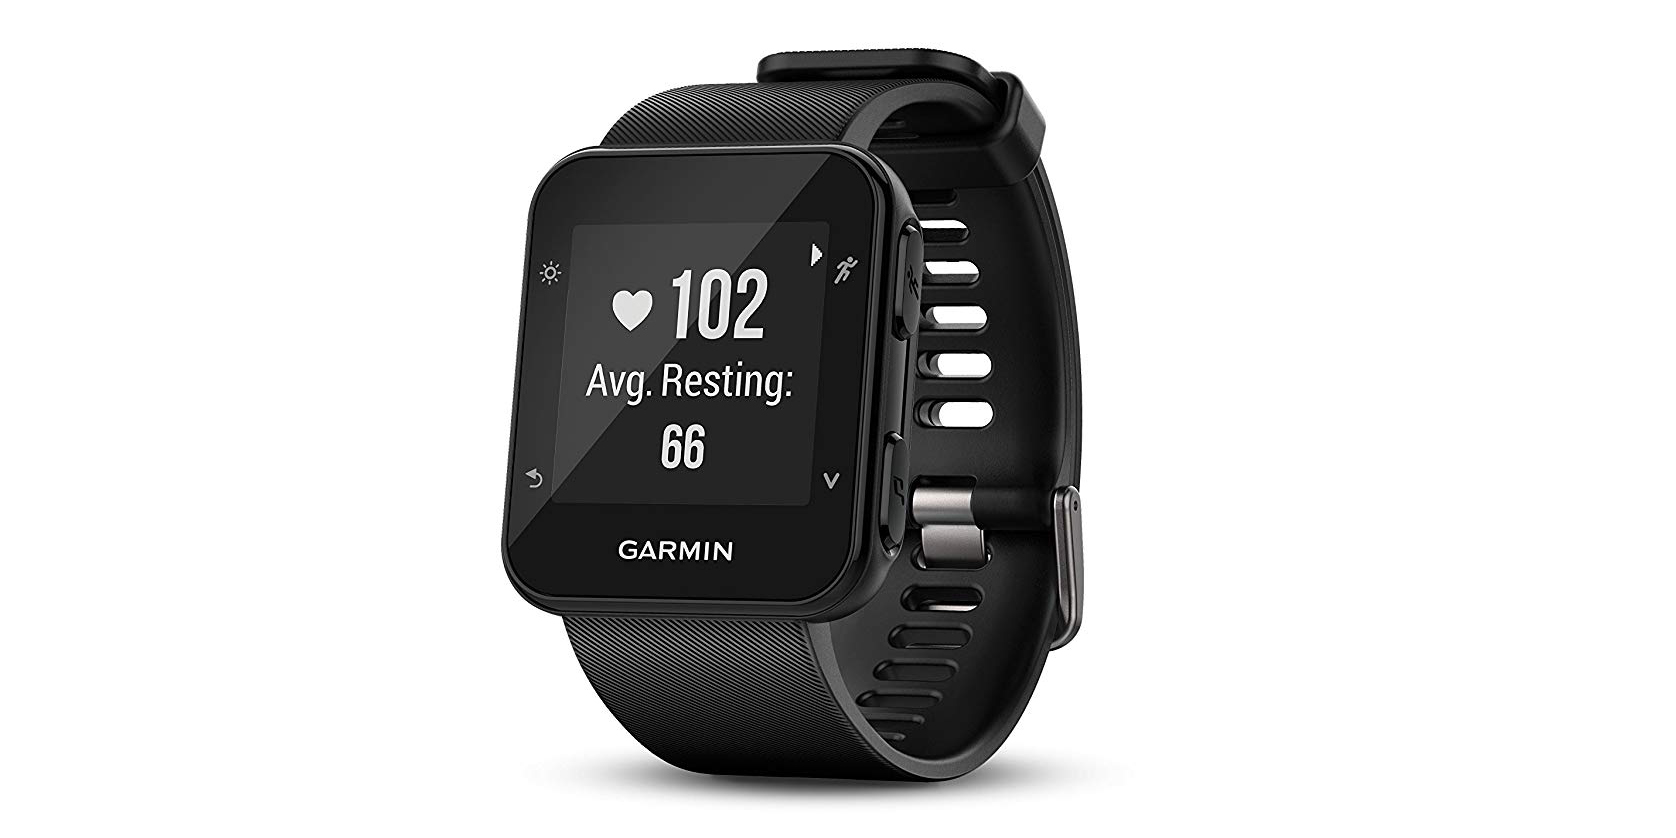 Garmin's Forerunner 35 Fitness Tracker hits Amazon all-time low at $100 (Reg. $130)